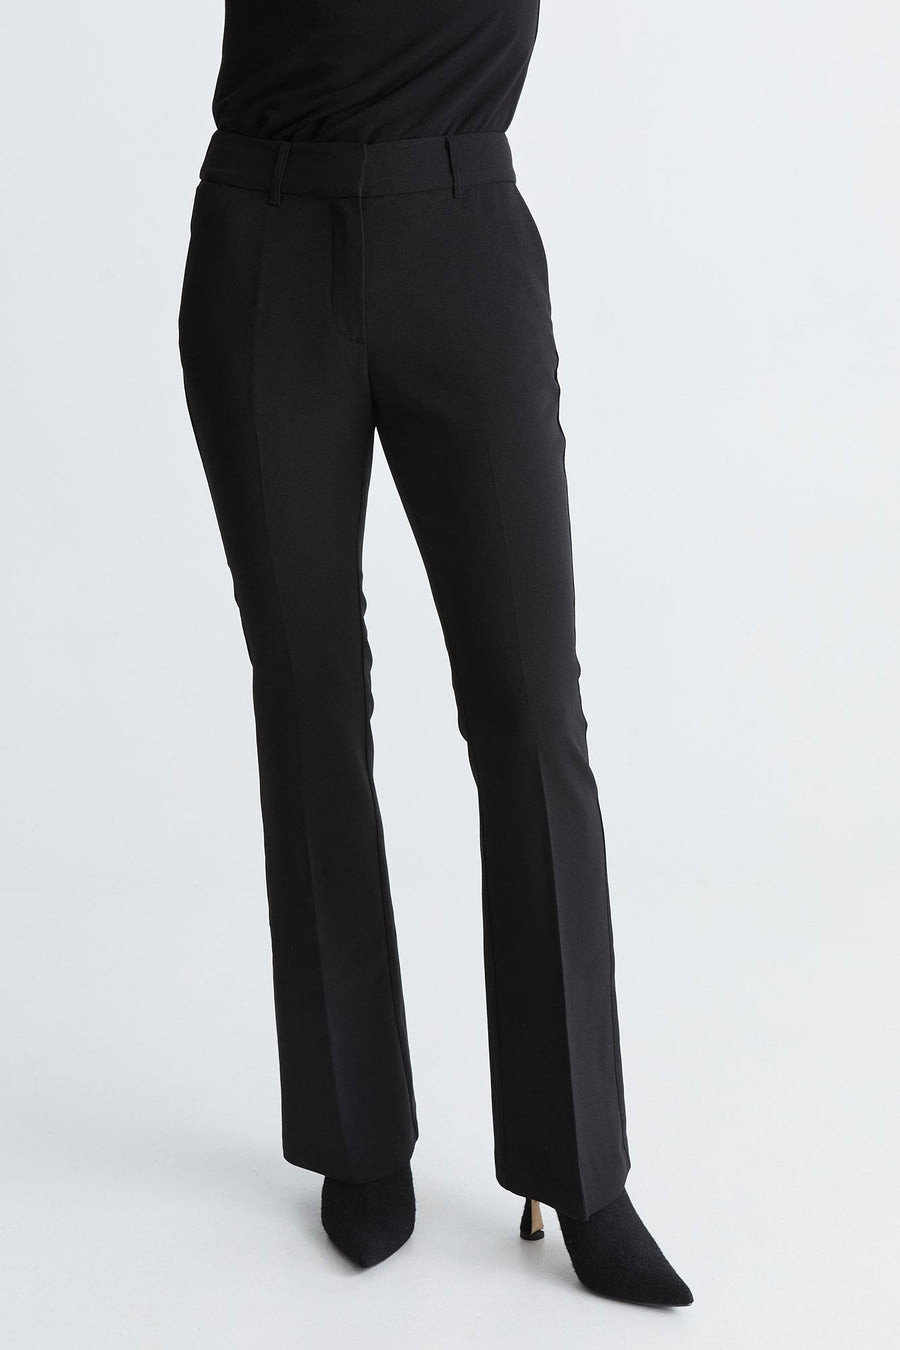 BENNY TROUSERS - BLACK Trousers Stylein